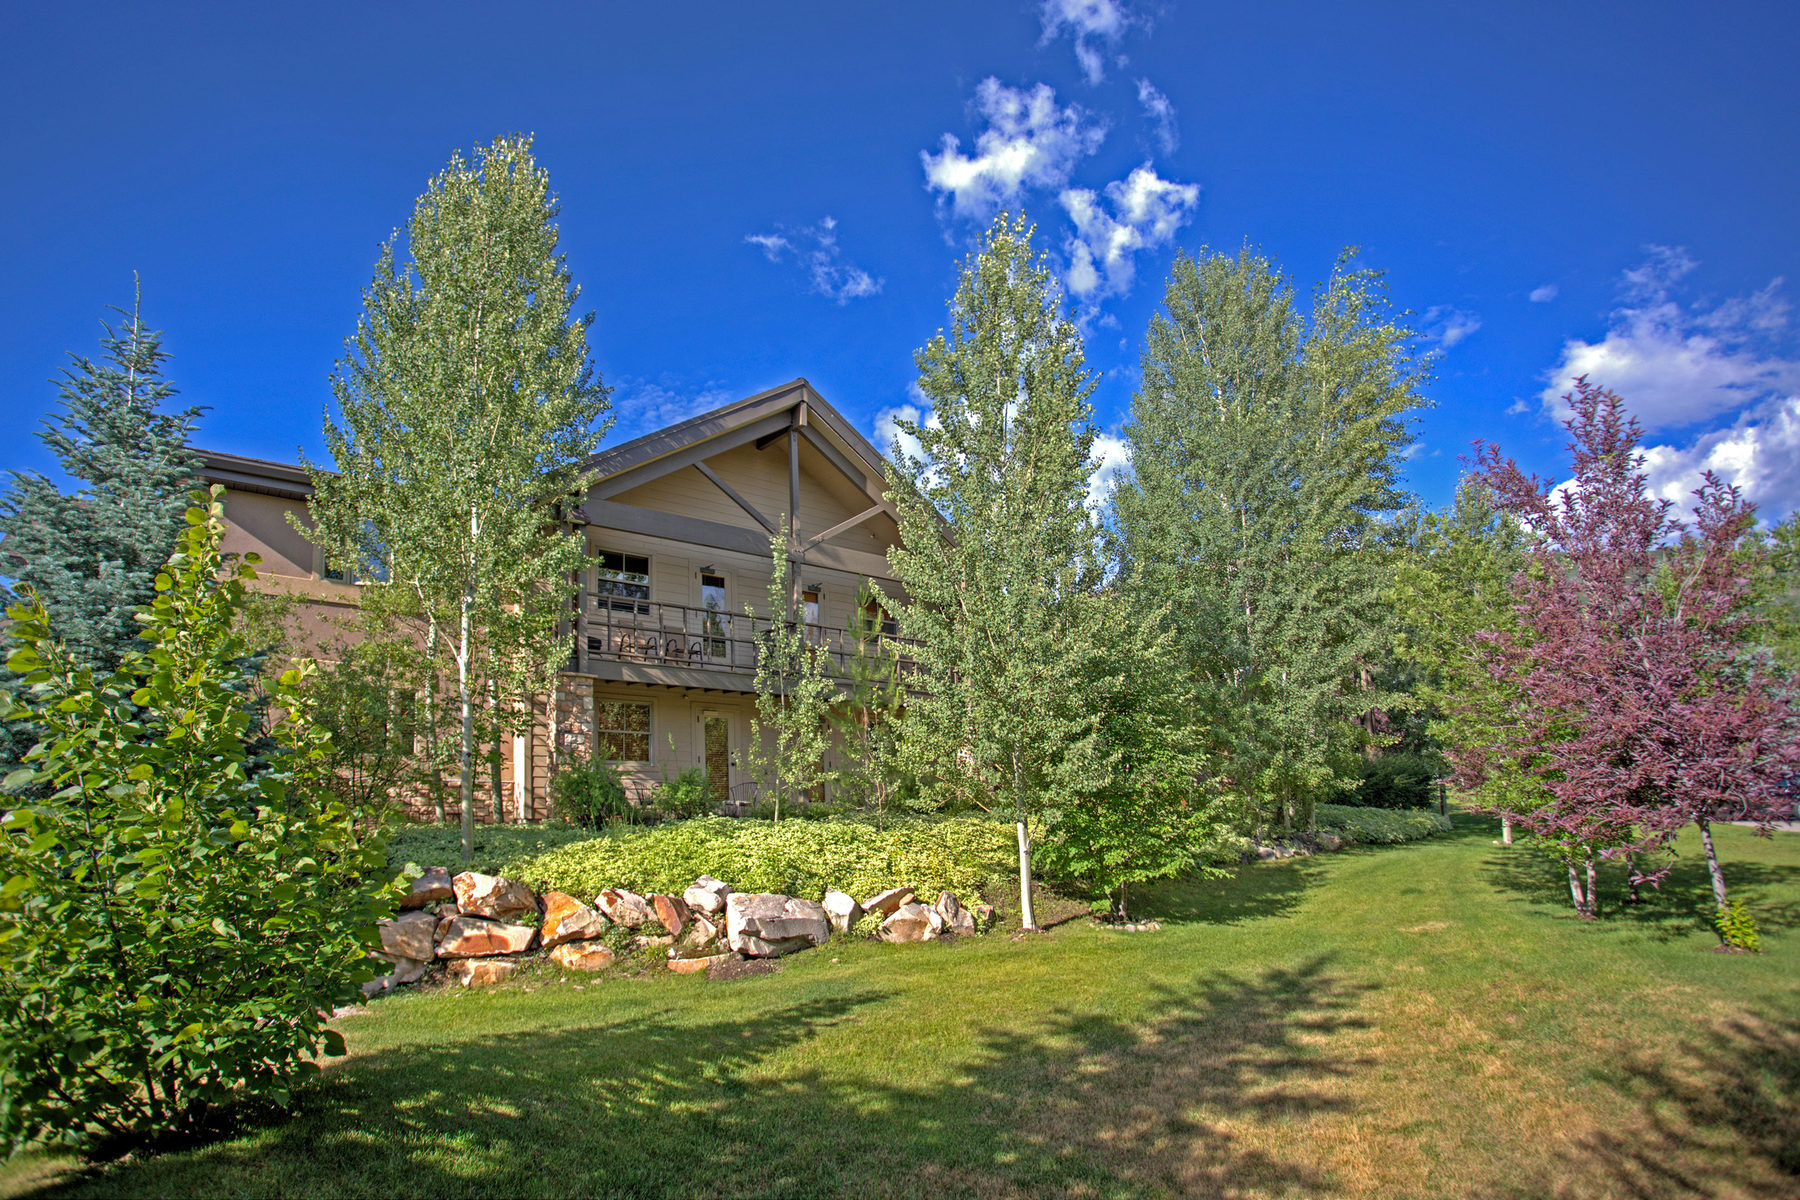 Condominium for Sale at Great income property with central location 2260 Park Ave #14 Park City, Utah 84060 United States